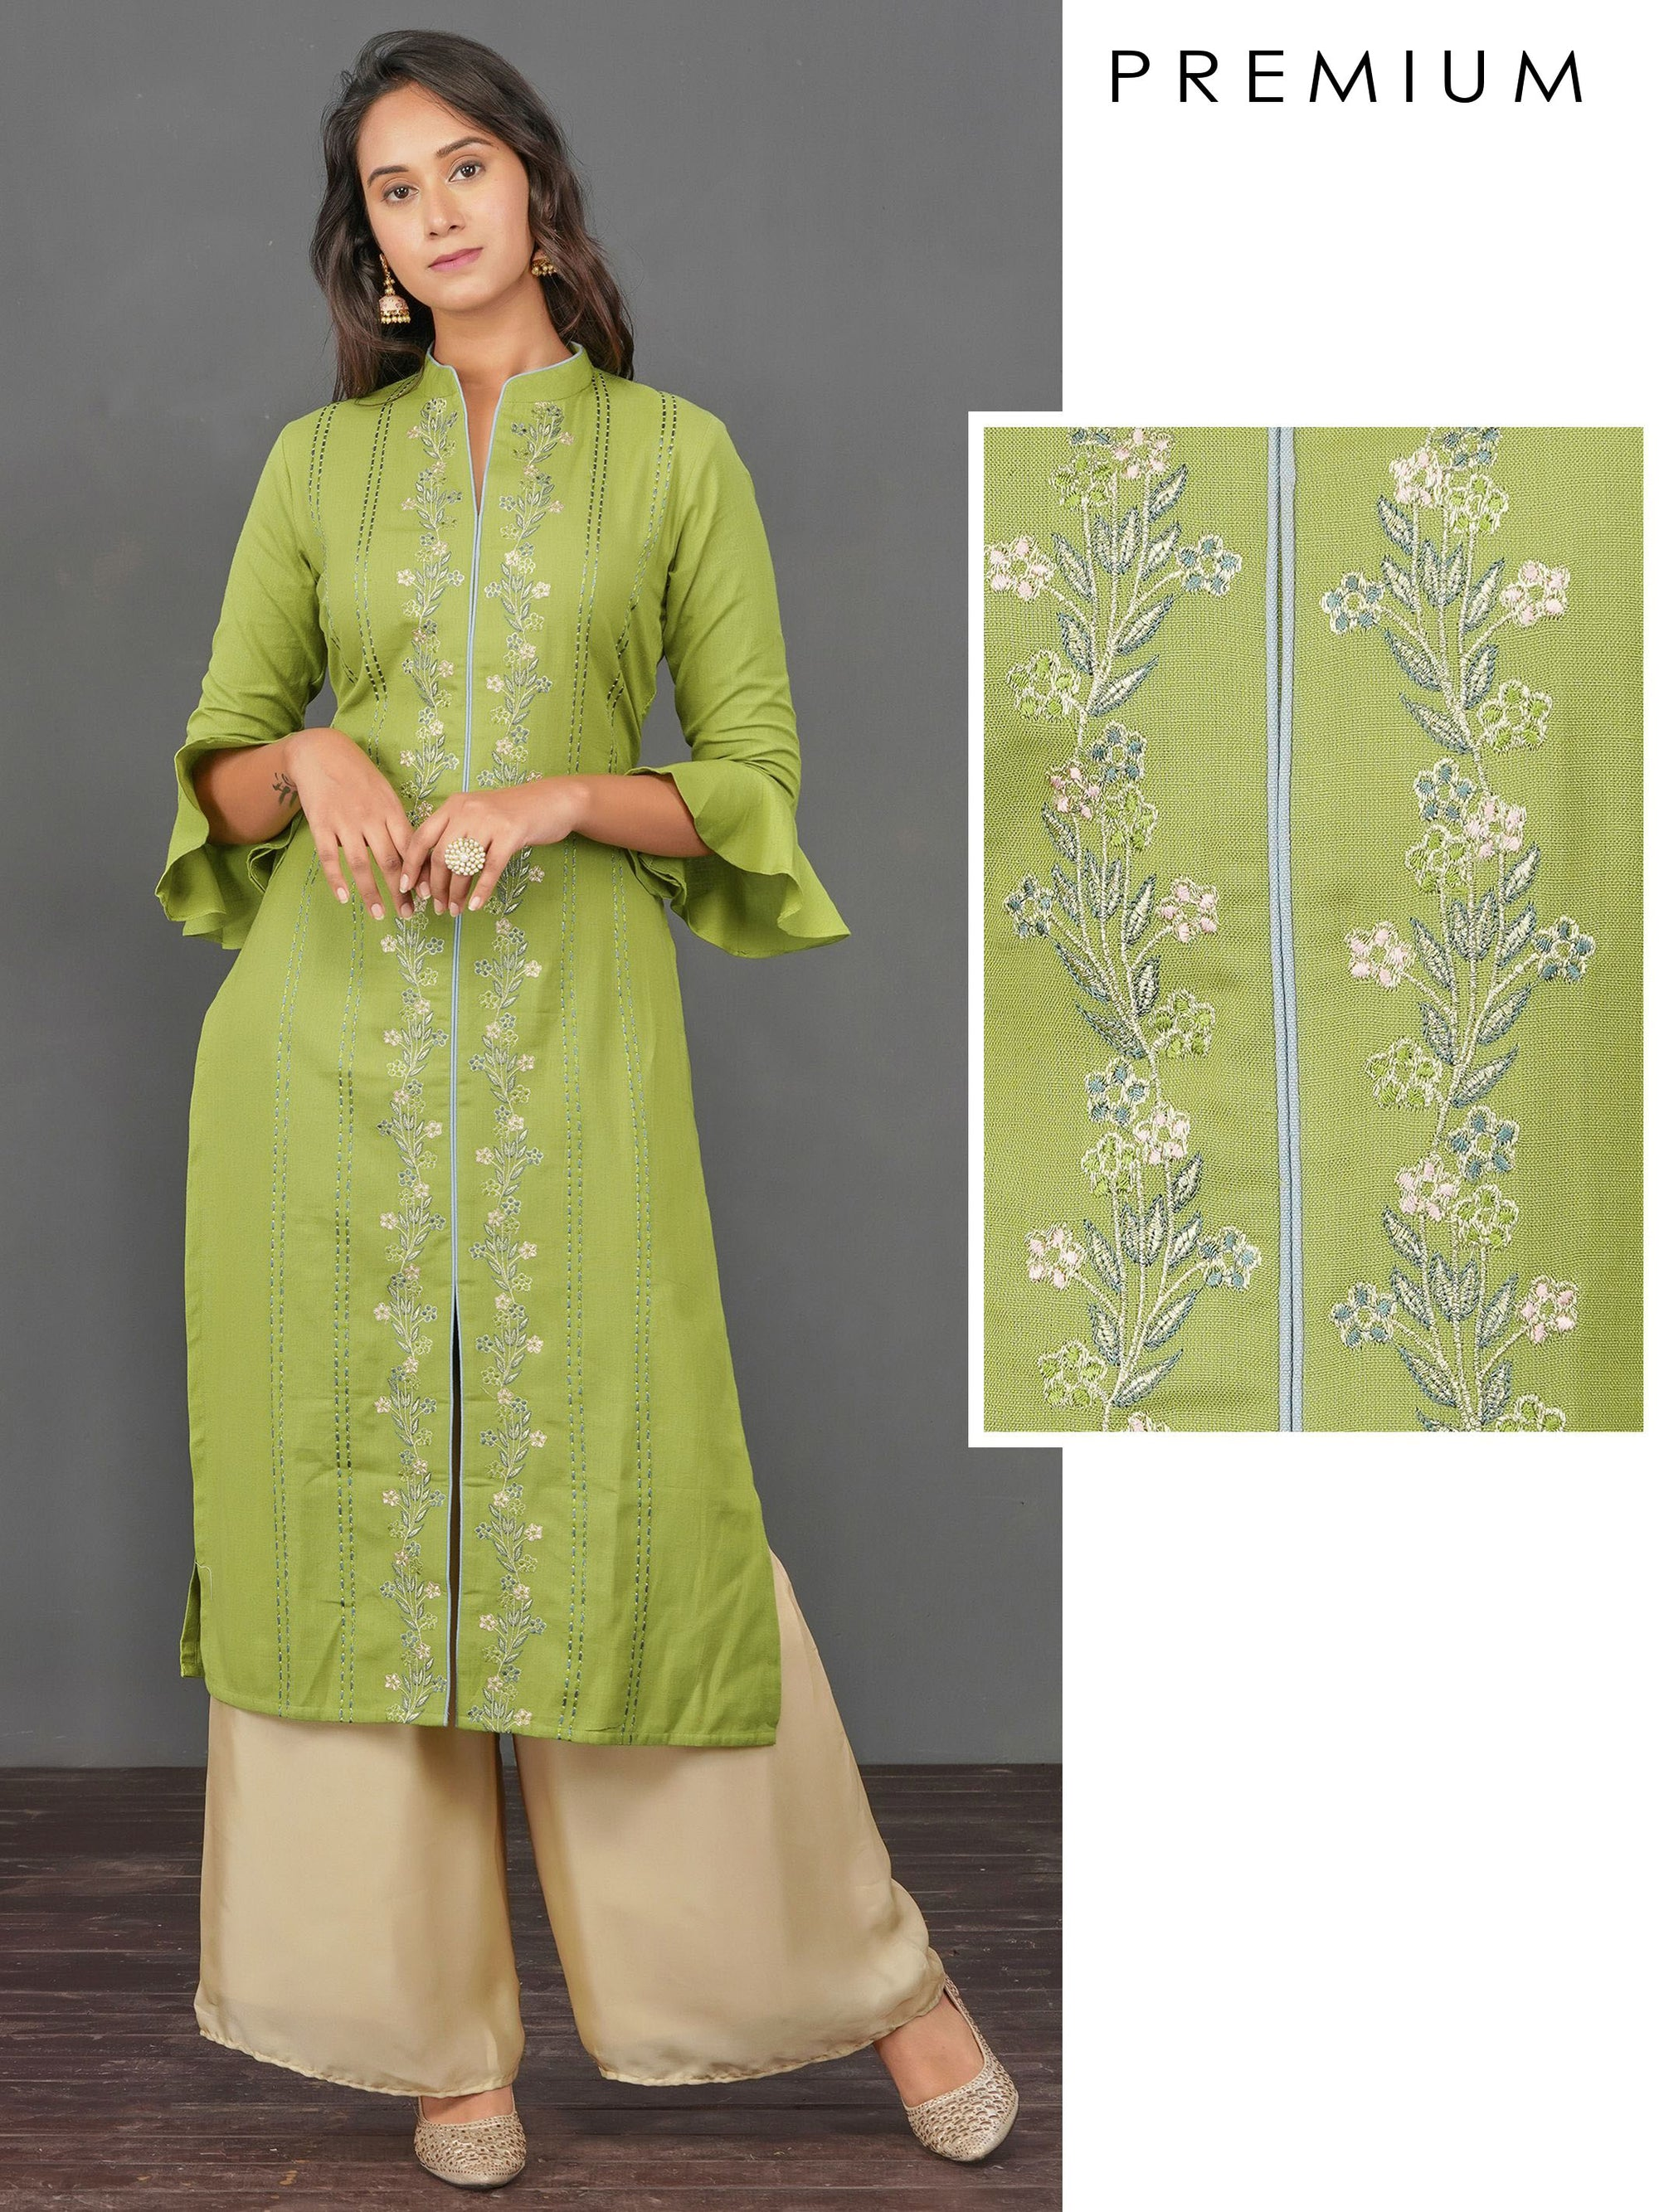 Floral & Chain Embroidered Cotton Kurti– Olive Green